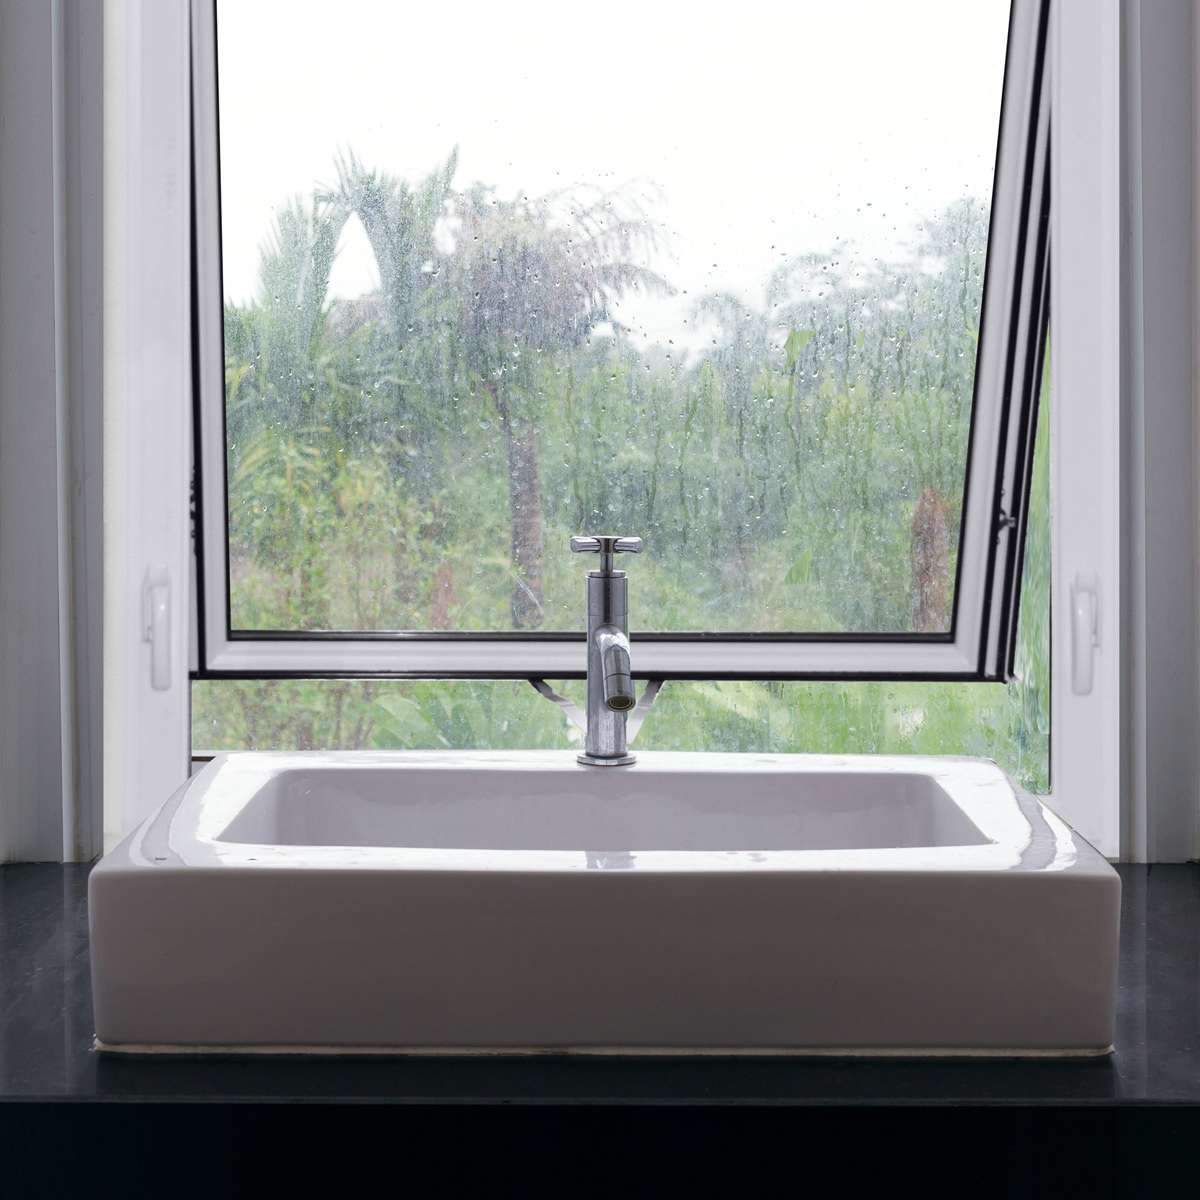 Awning window above a white sink with rainy view with green trees